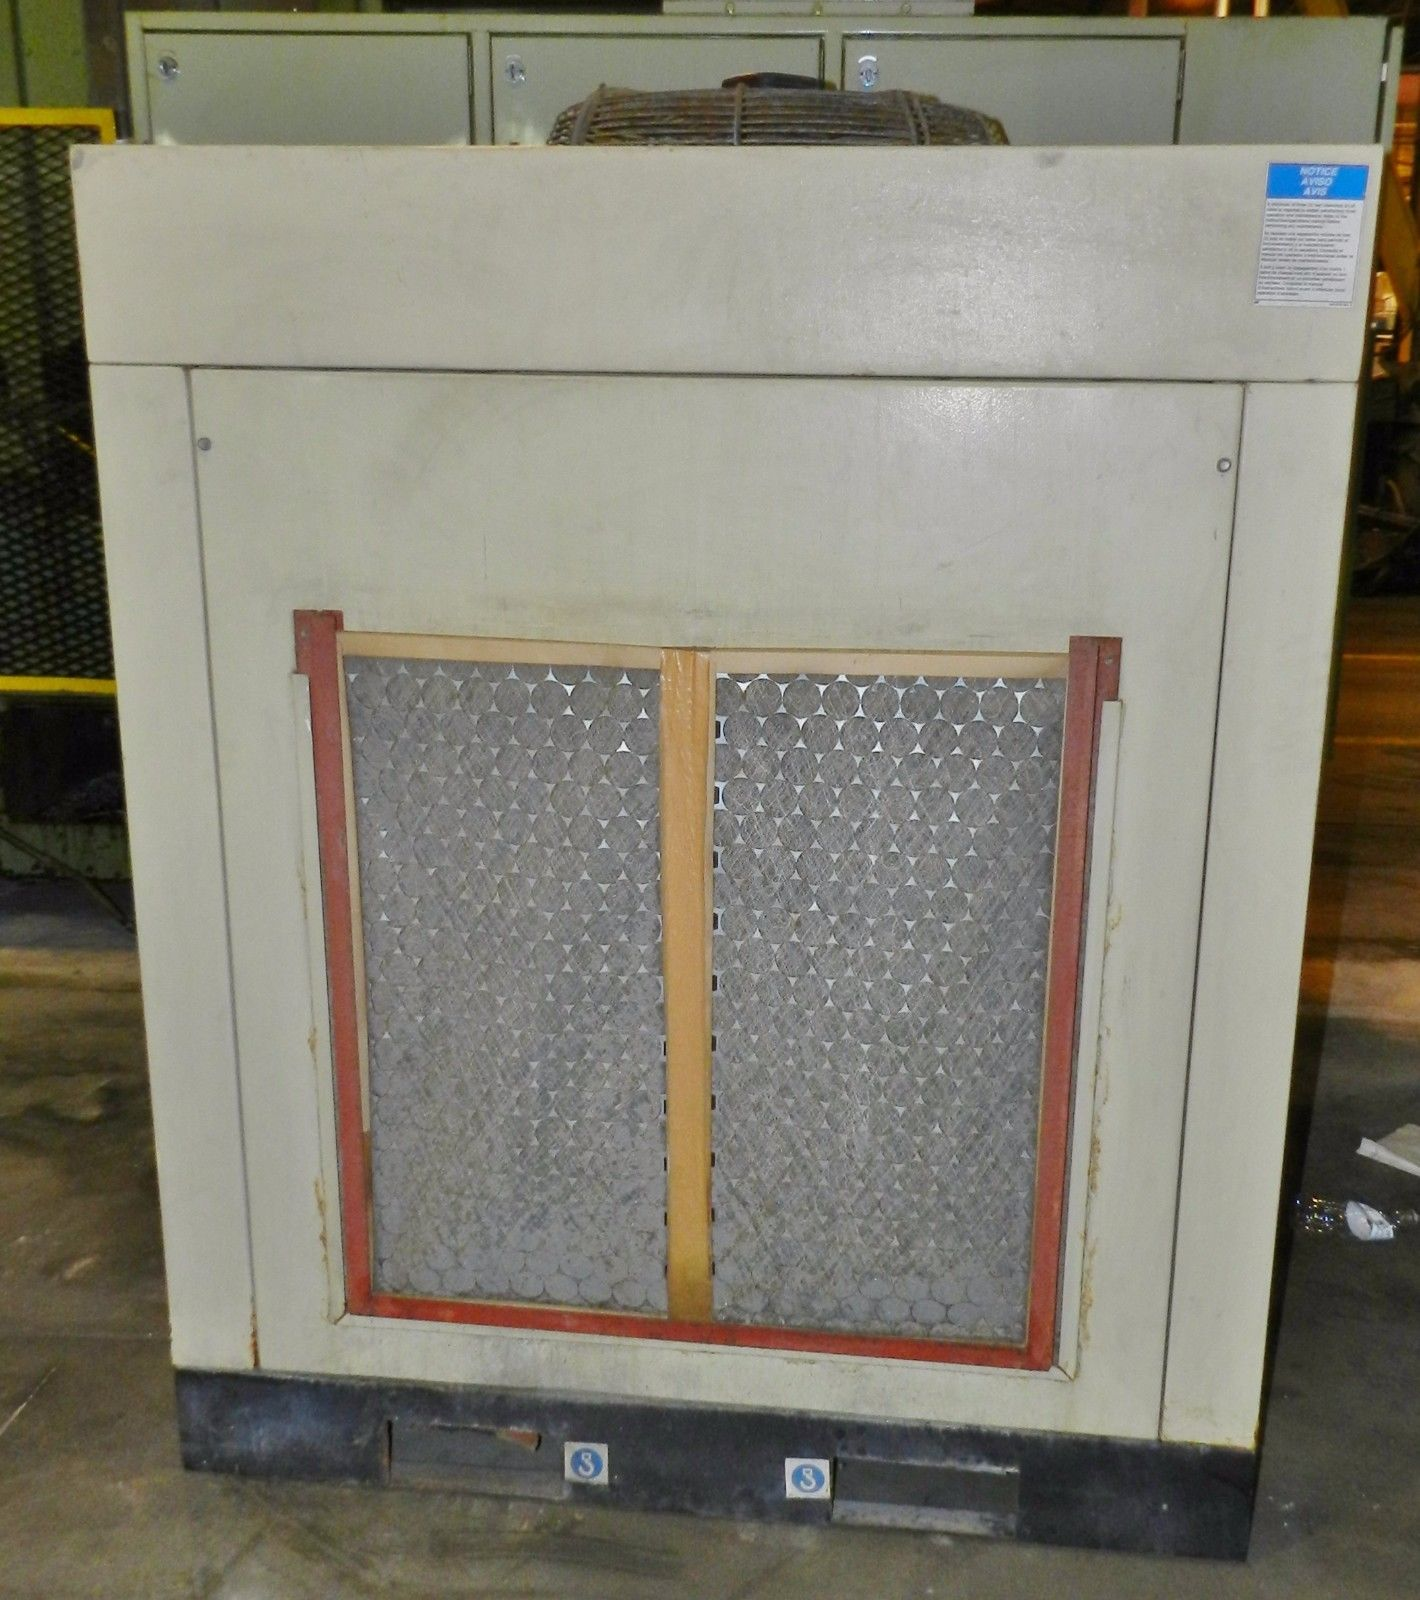 Lot 42 - Ingersoll Rand TS6A Refigerated Air Dryer